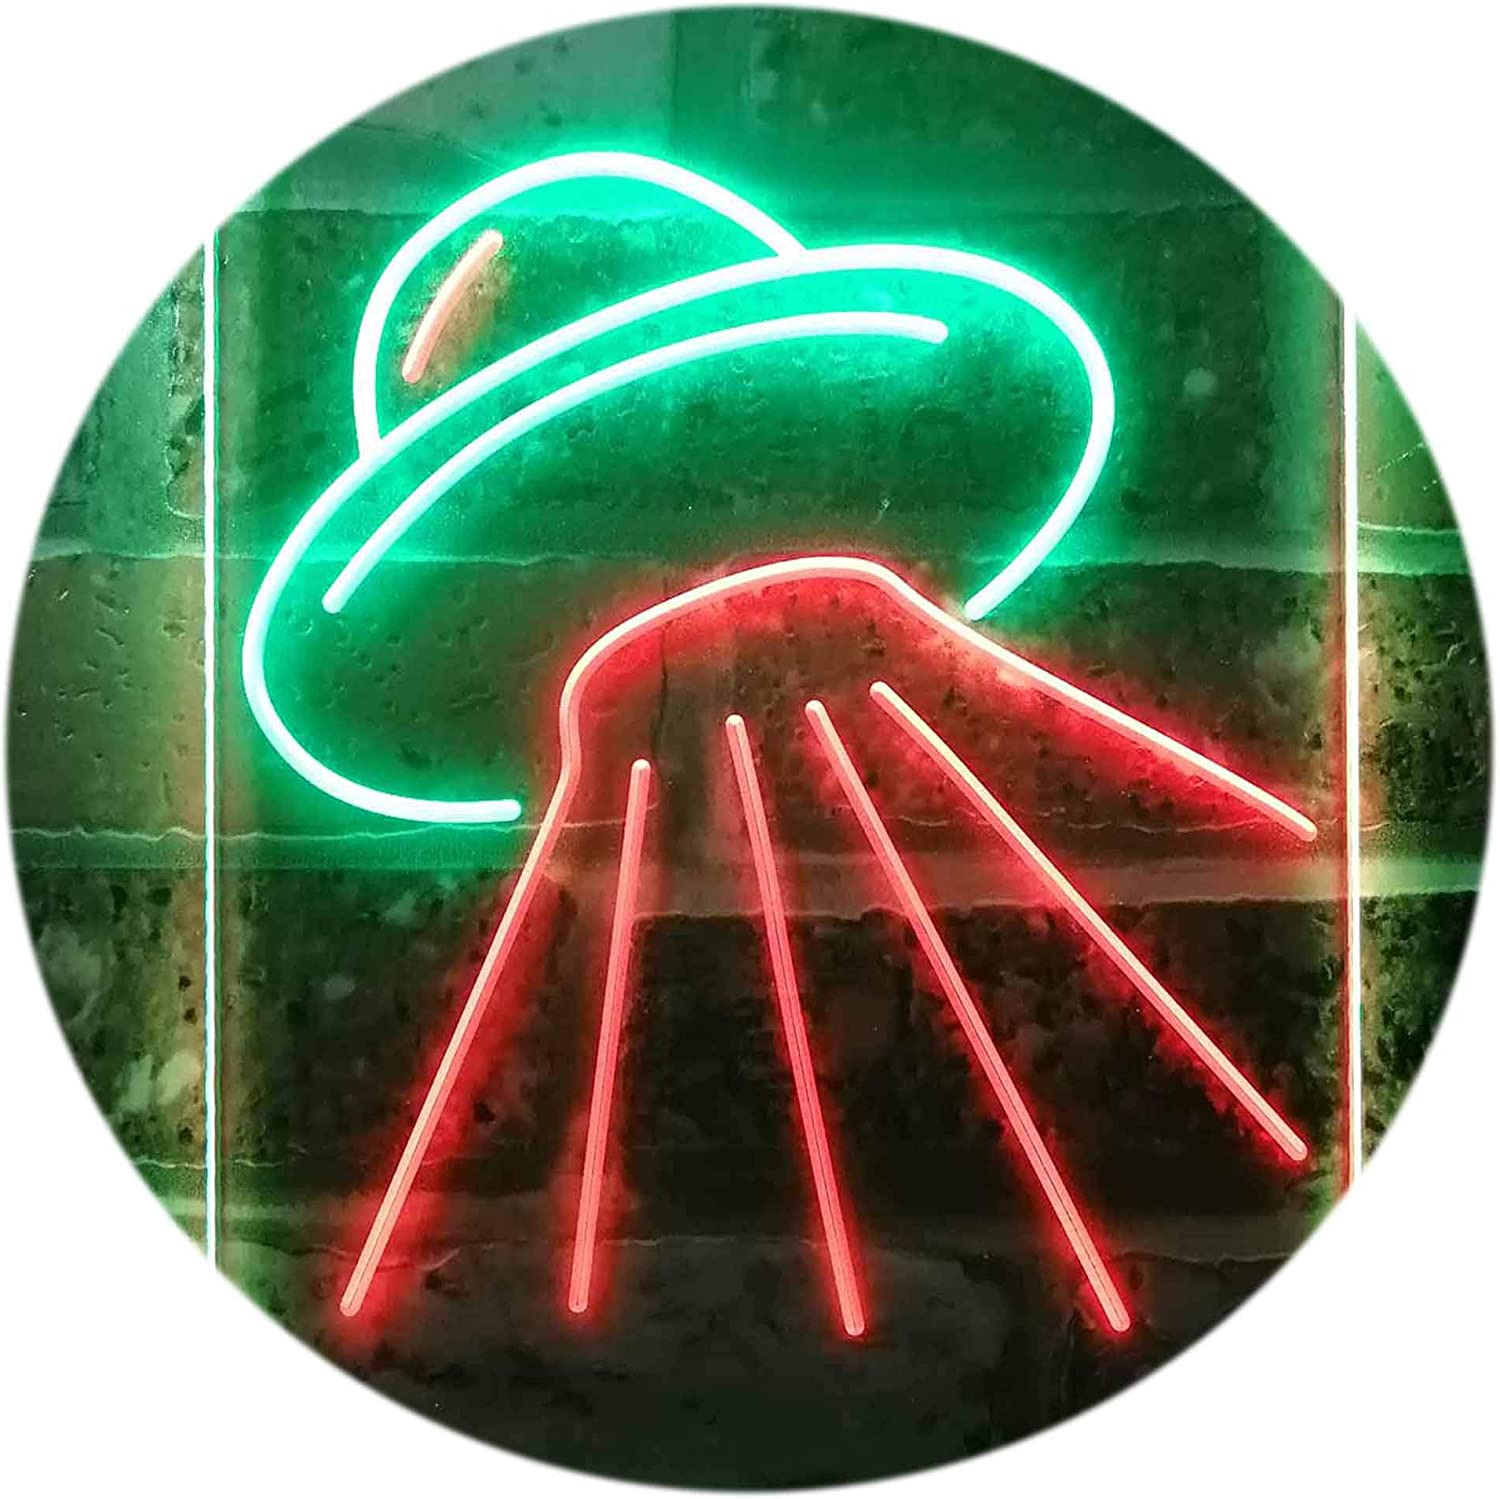 ADVPRO Manufacturer direct delivery UFO Alien Spaceship Dual Color Green Sign Neon Fees free Red LED